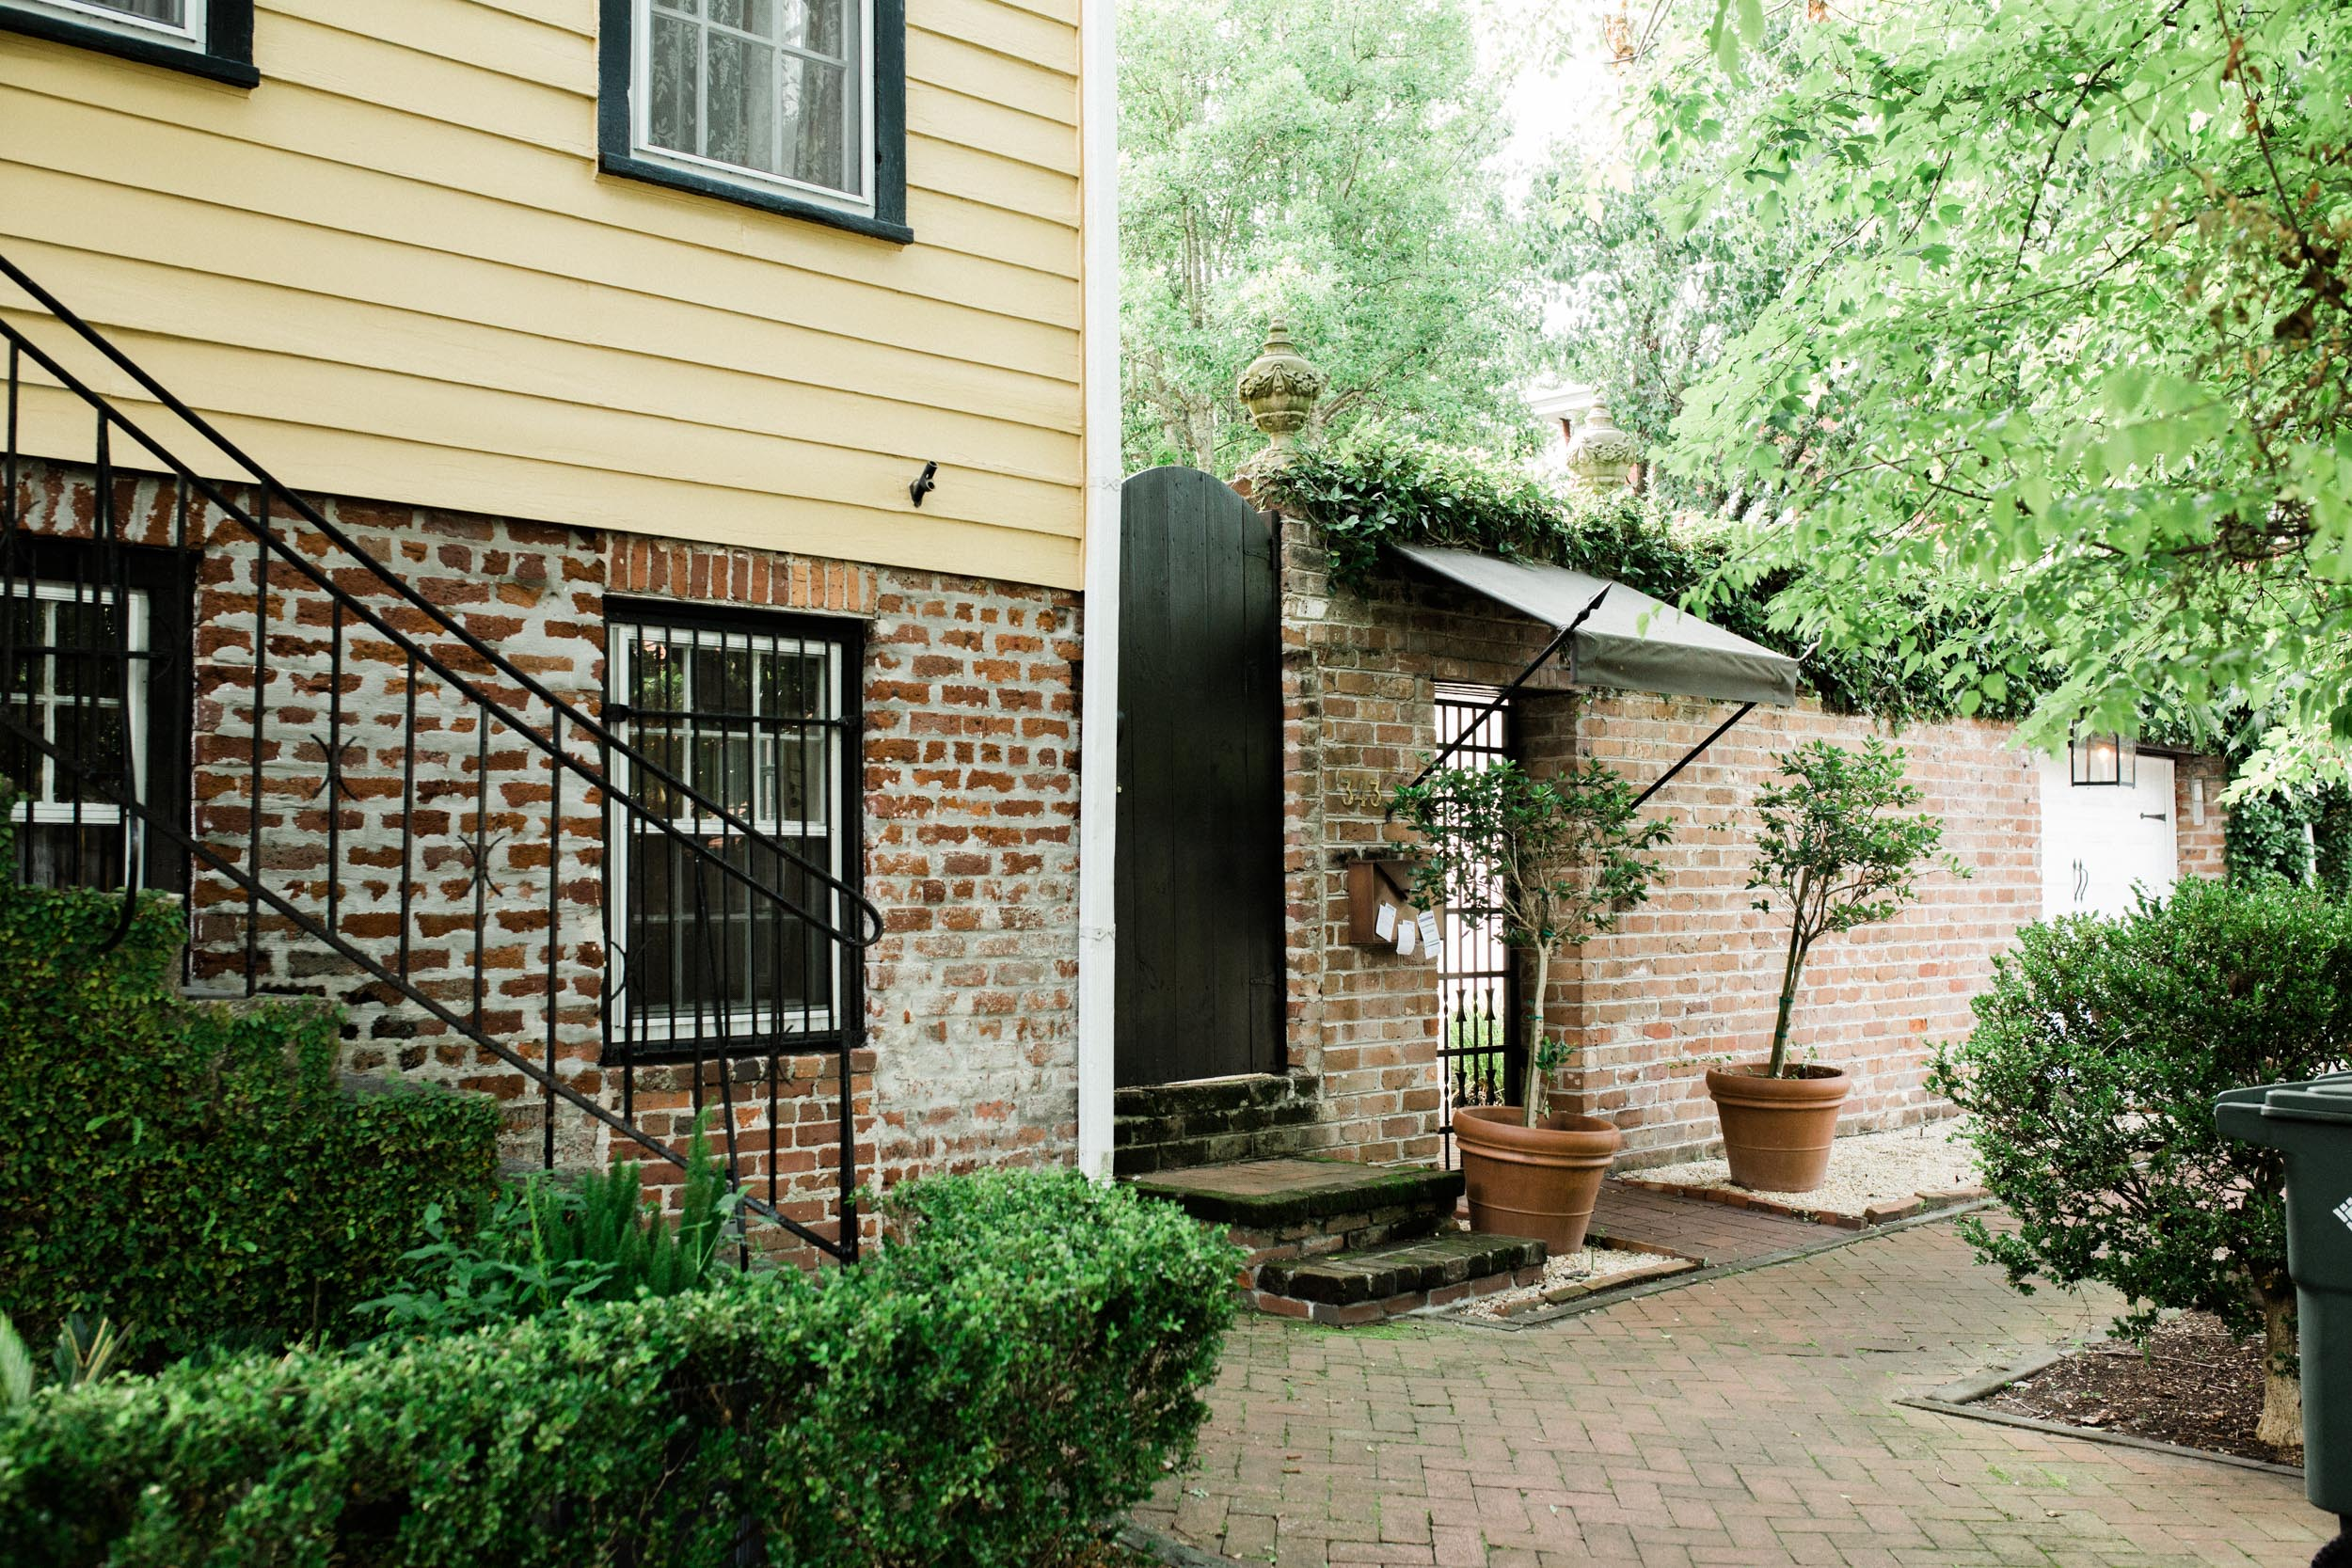 Entrance to our Air BNB on Tattanall, at the edge of the historic district, Savannah is amazingly walkable.